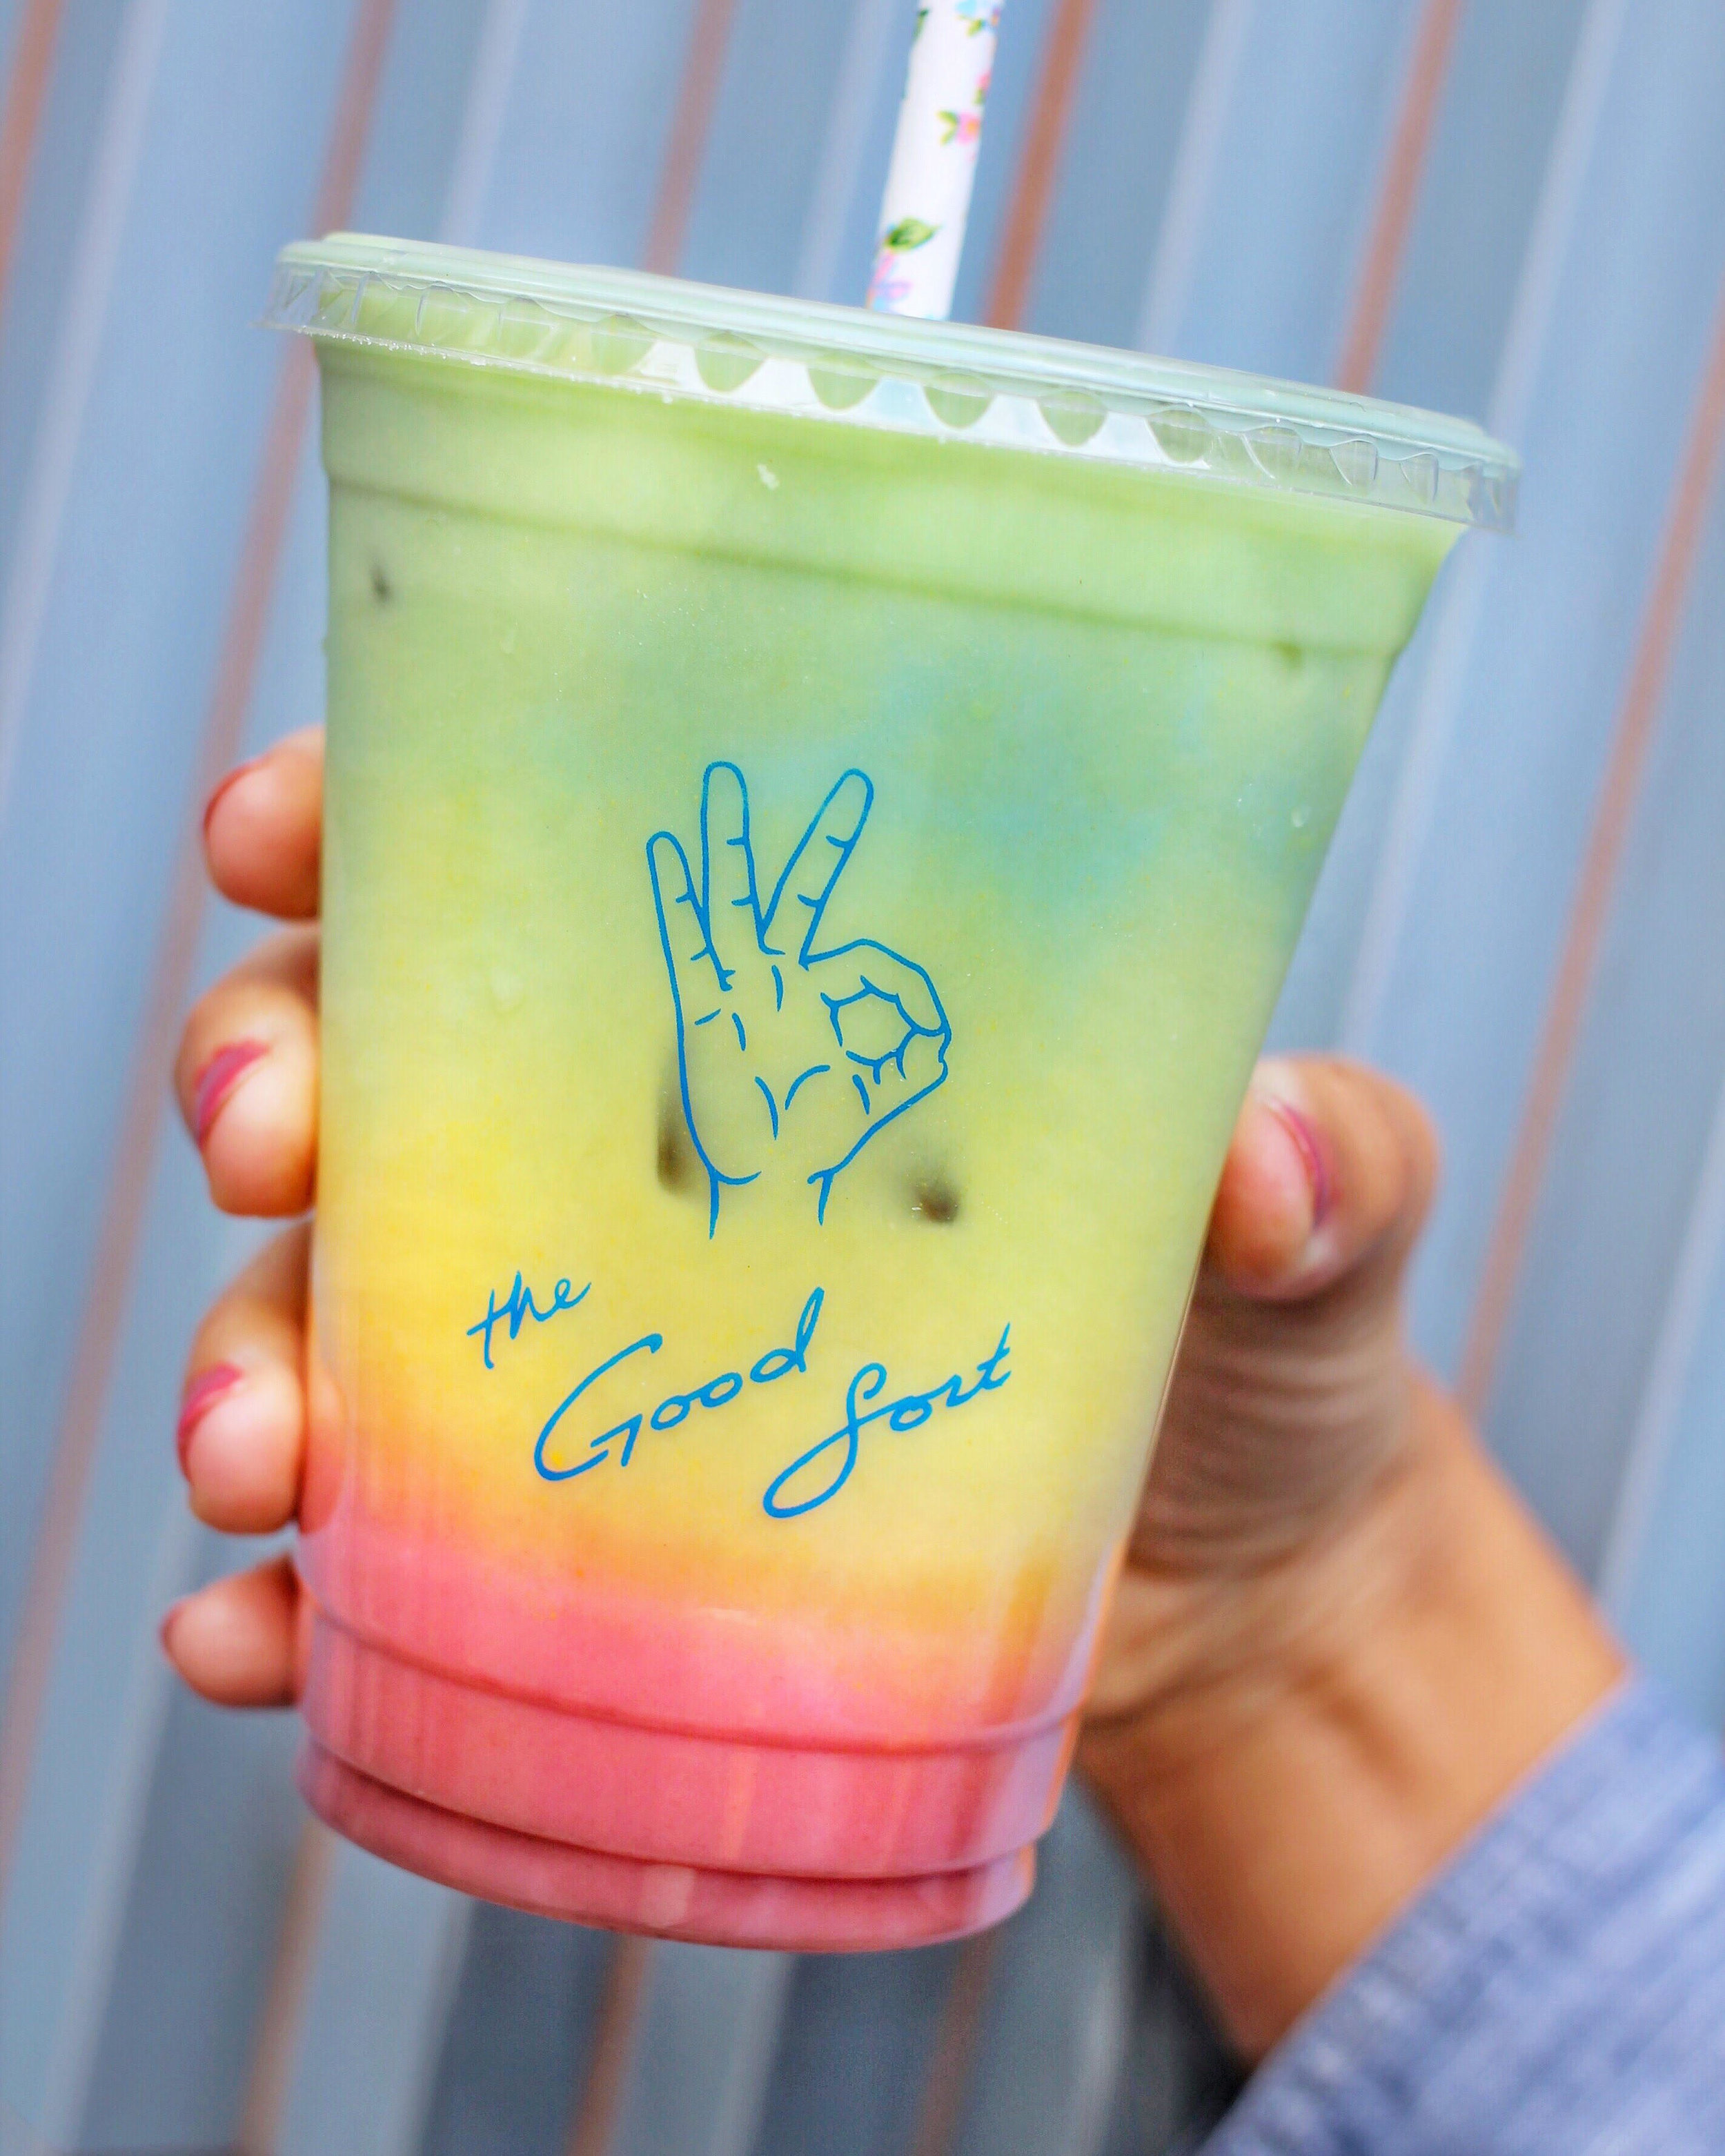 The Iced Rainbow Latte from The Good Sort